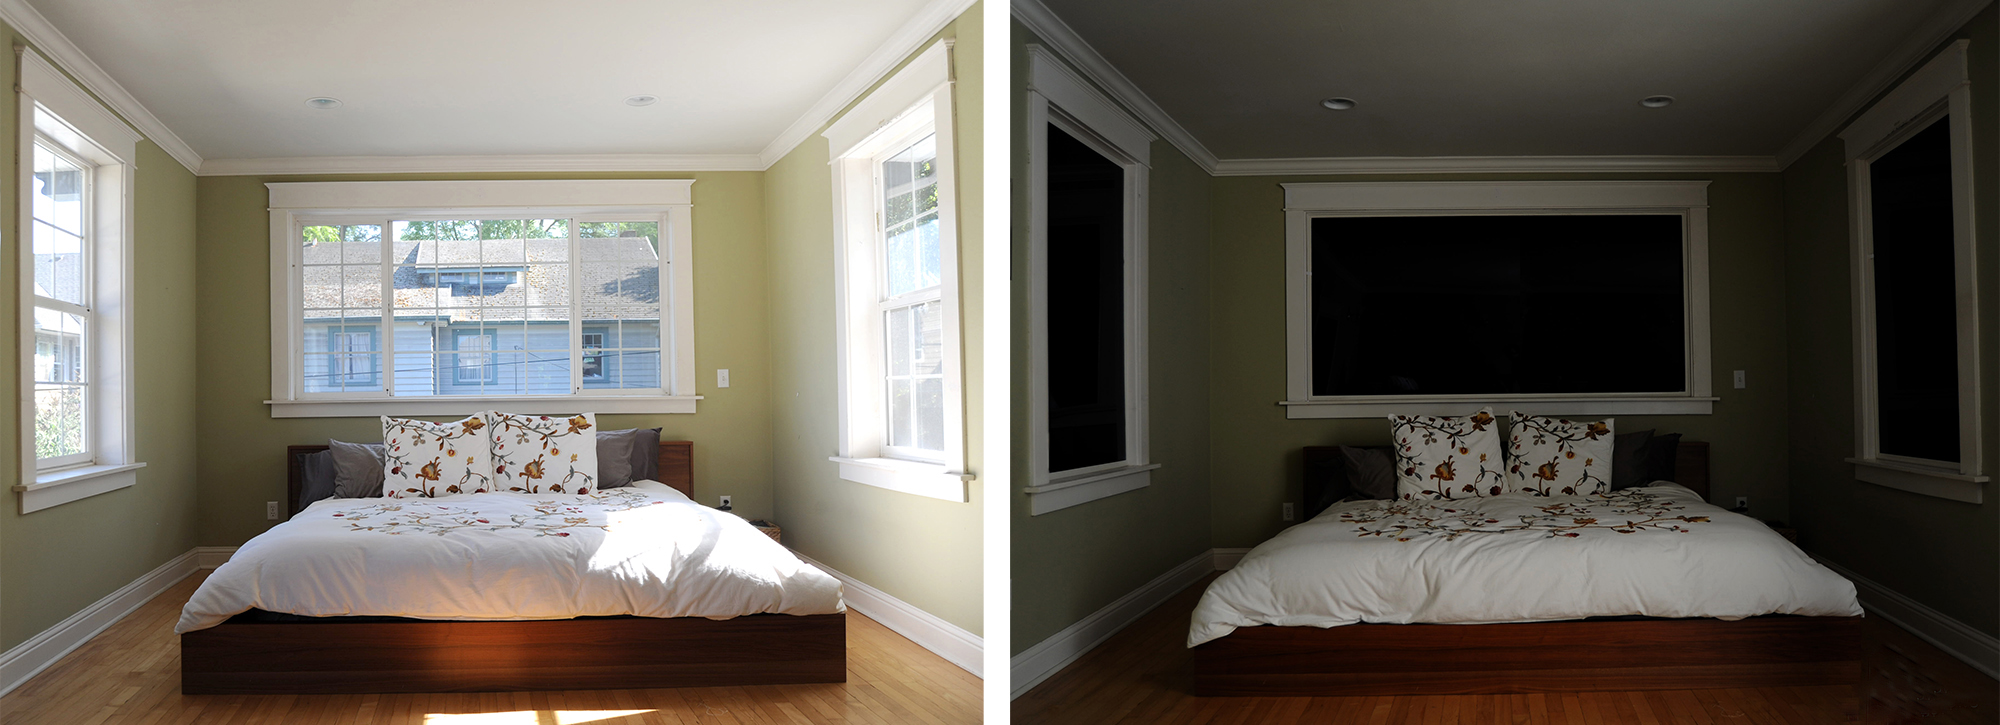 Room Darkening Vs Blackout Shades Blindster Blog